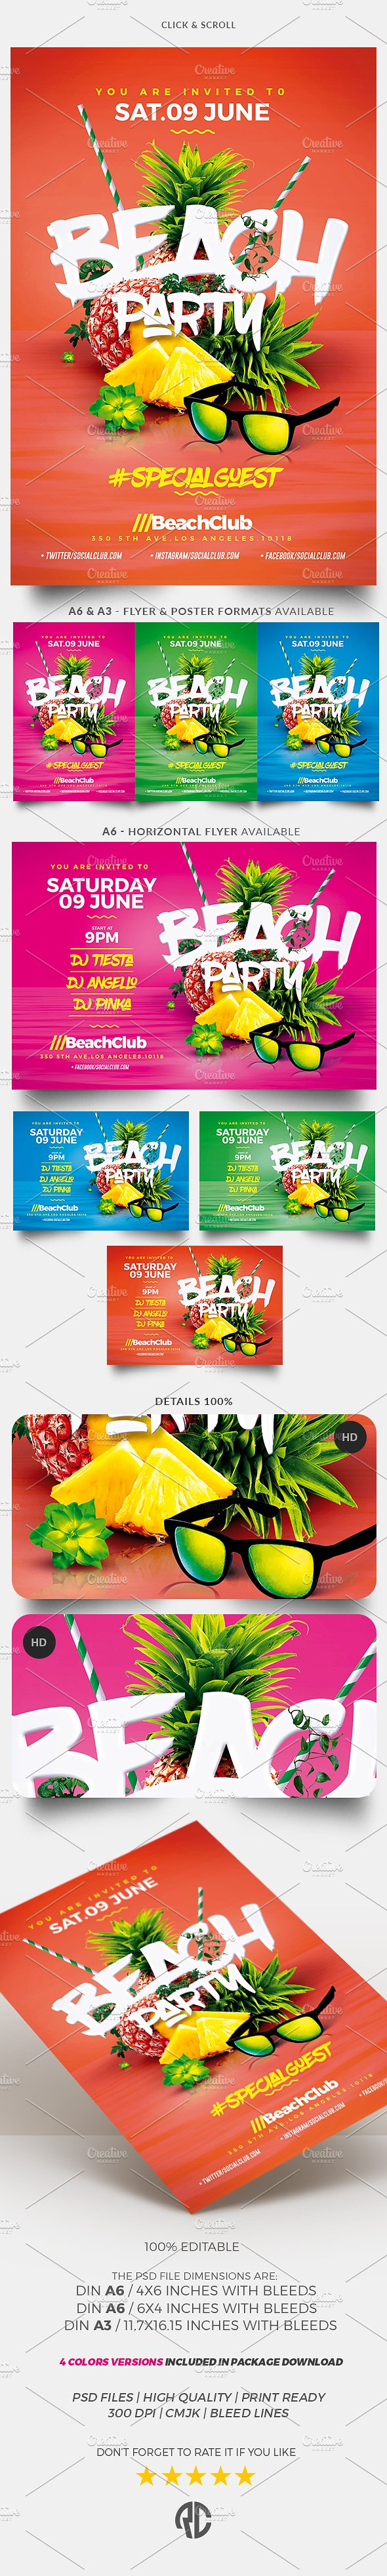 summer party package by creative flyers on creativemarket